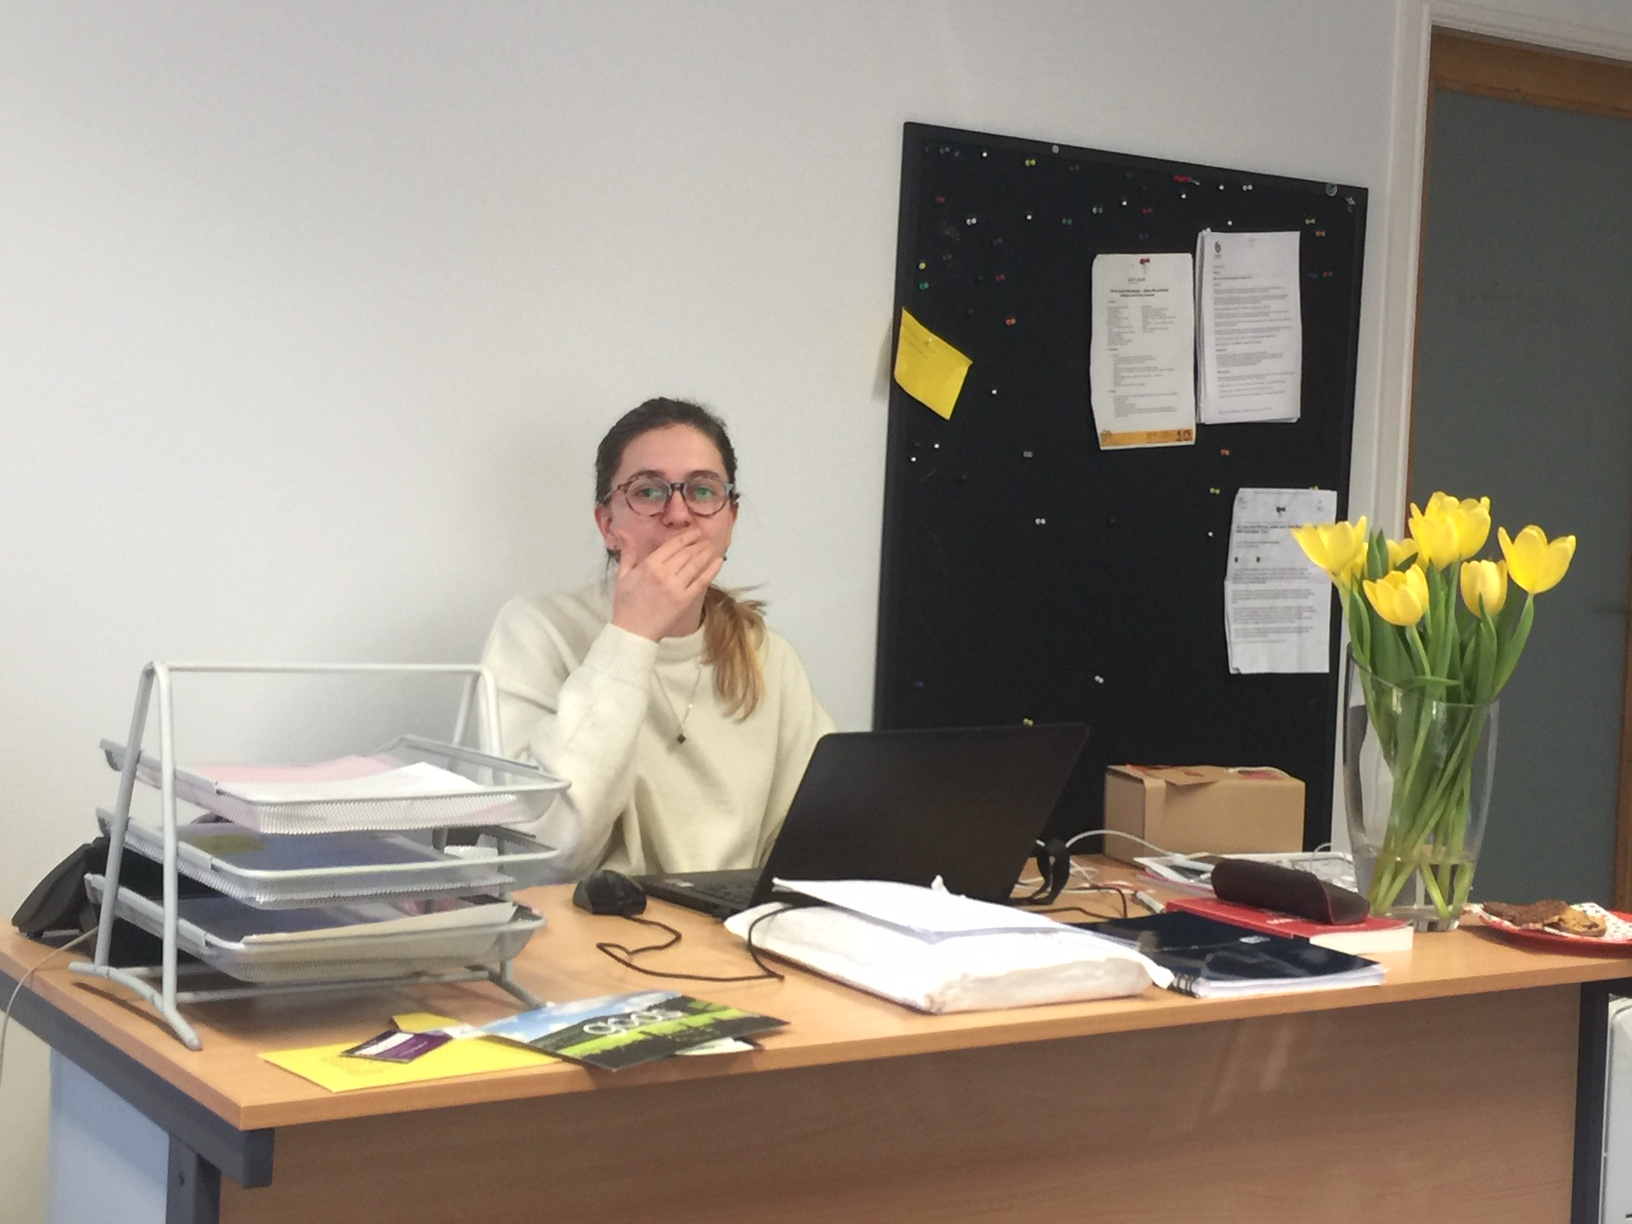 Lovely to see Marta from Quality Bearings Online in the office